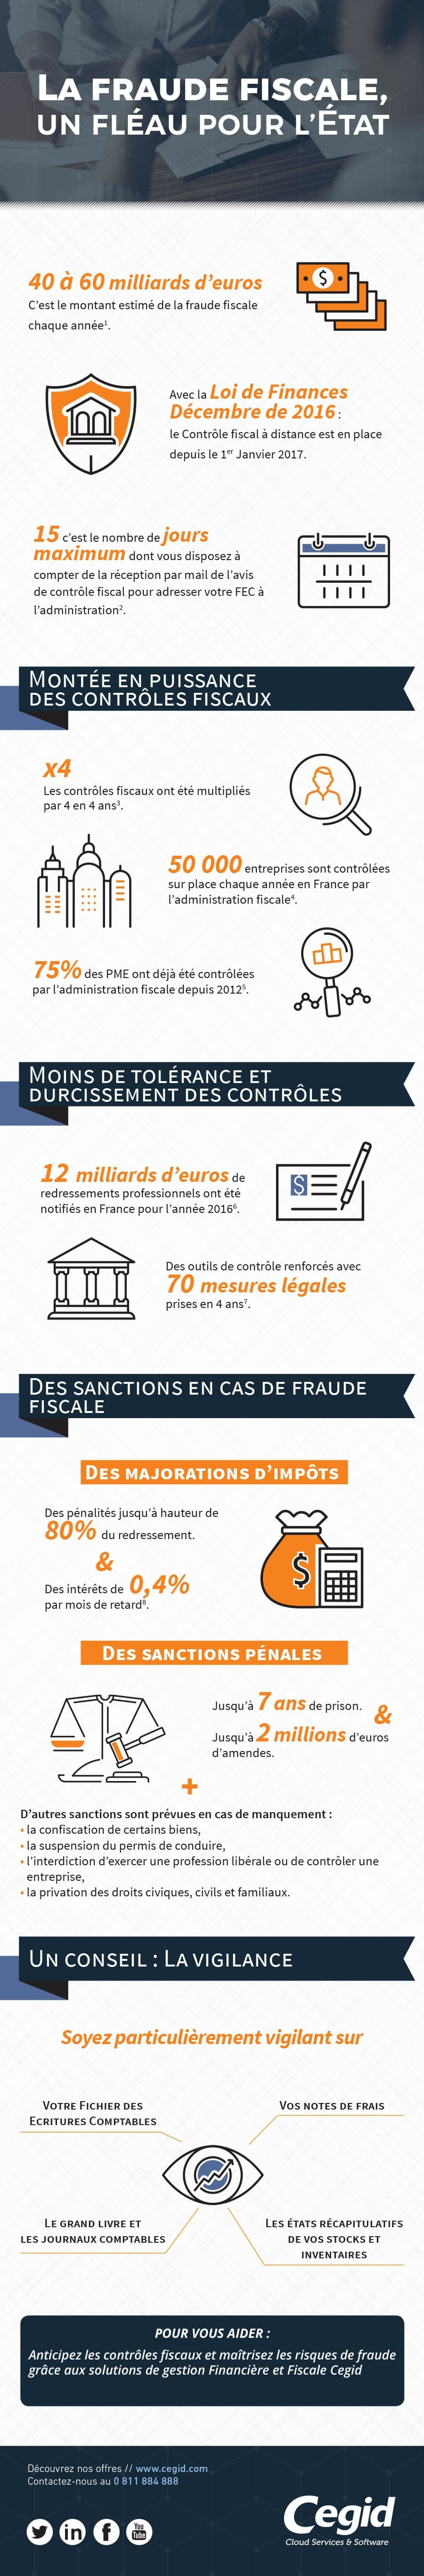 infographie maitrise risque fiscal